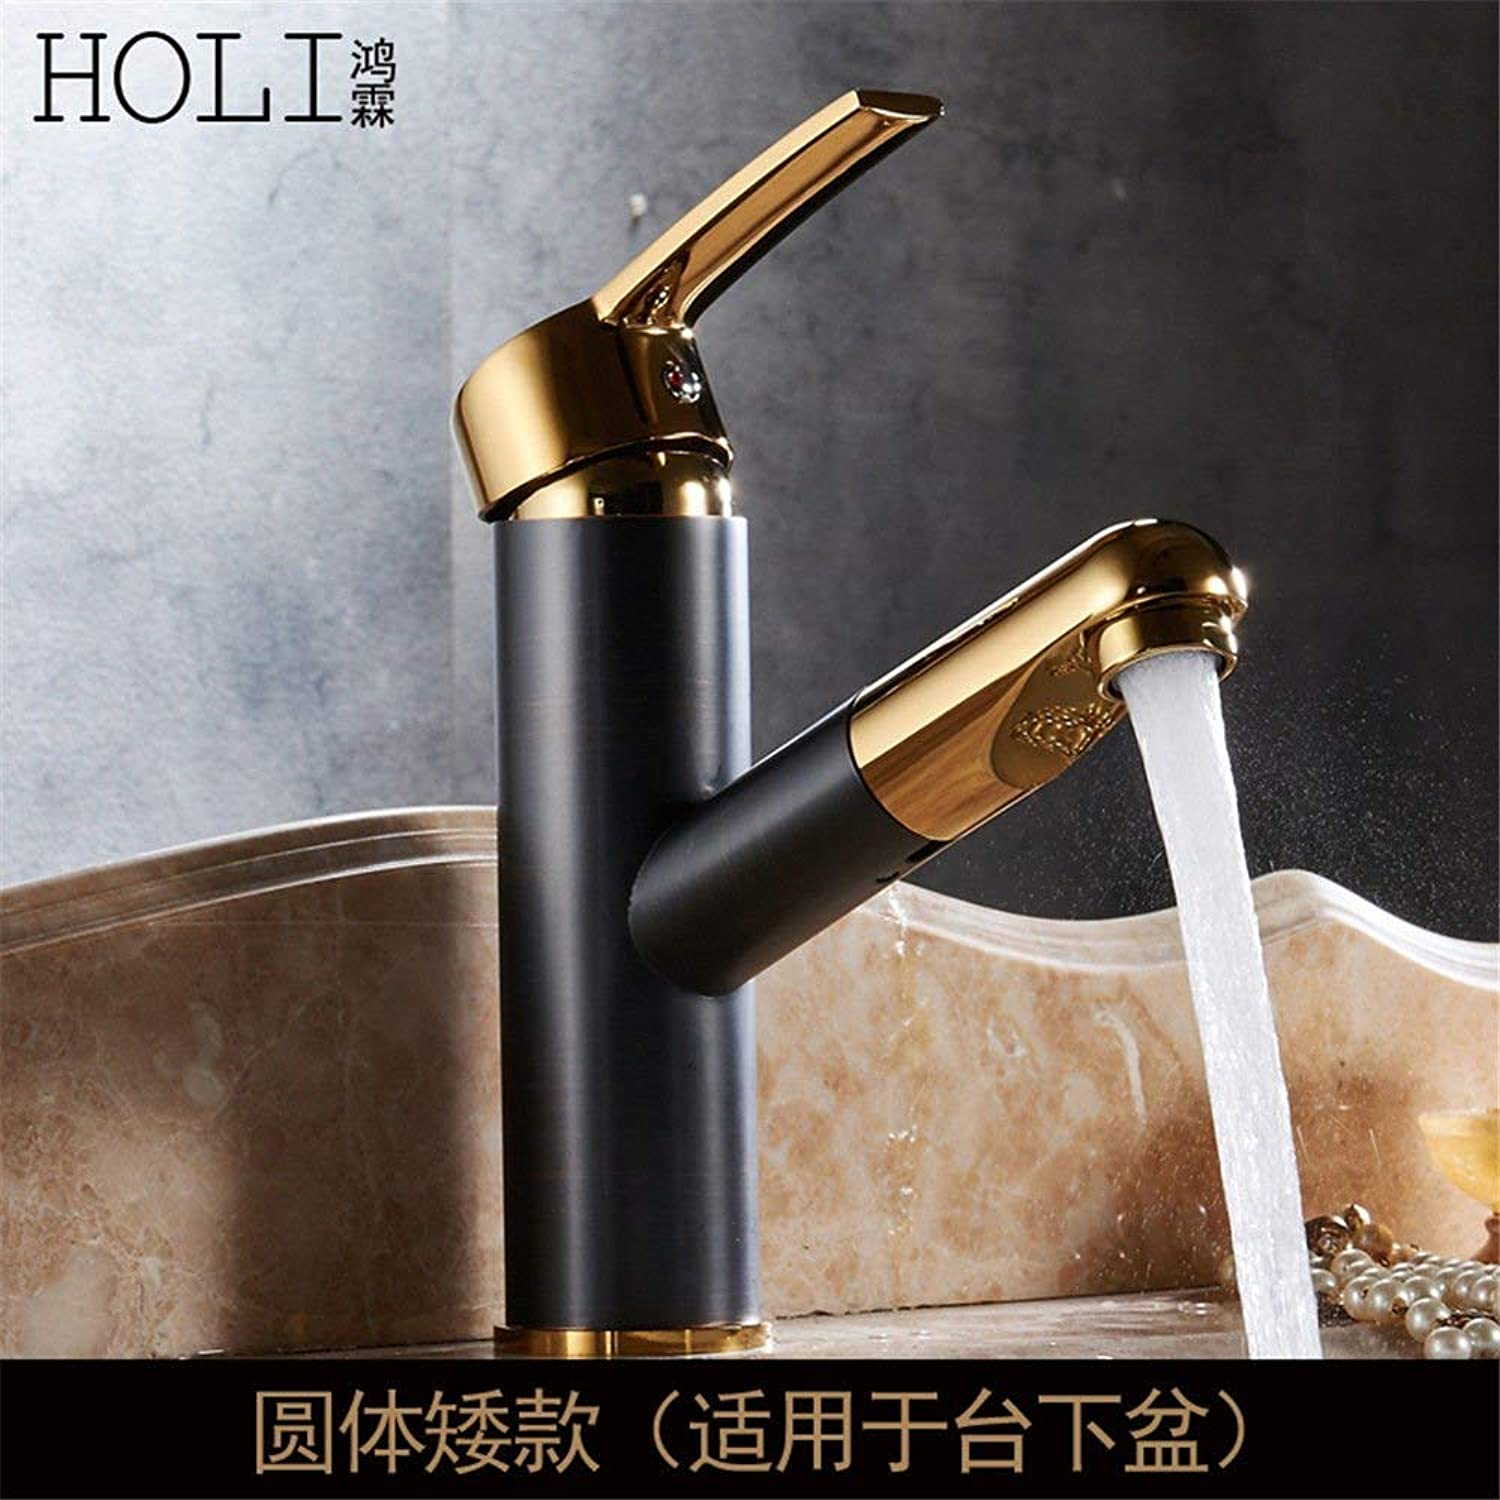 Kitchen sink mixer tap pull-out spout head hot and cold water kitchen sink basin mixer tap cloakroom basin sink mixer tap basin mixer tap hot and cold water, solid brass antique gold stretch sink fauc